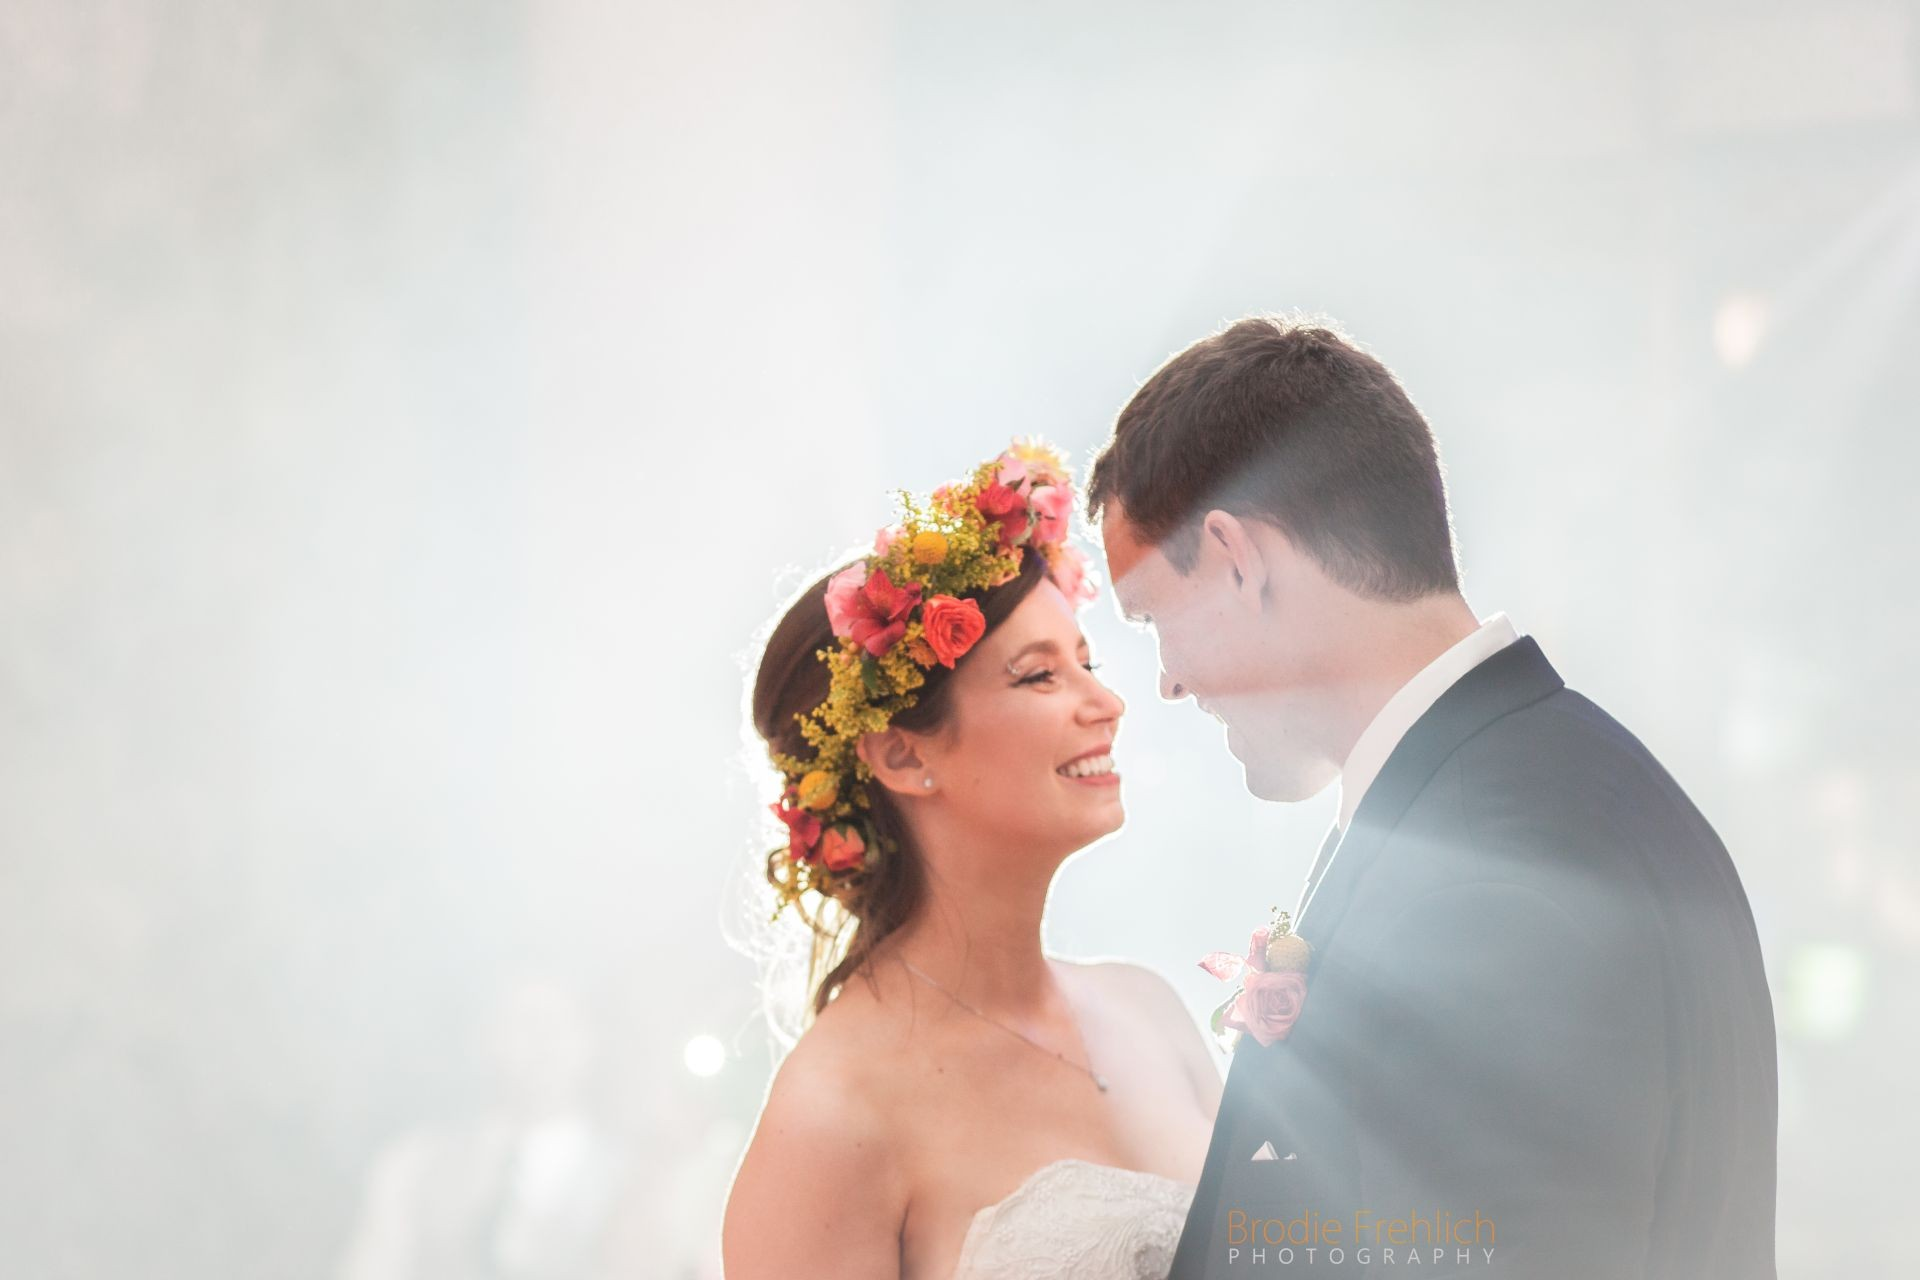 Victoria Wedding Photographer 2016 - Brodie Frehlich